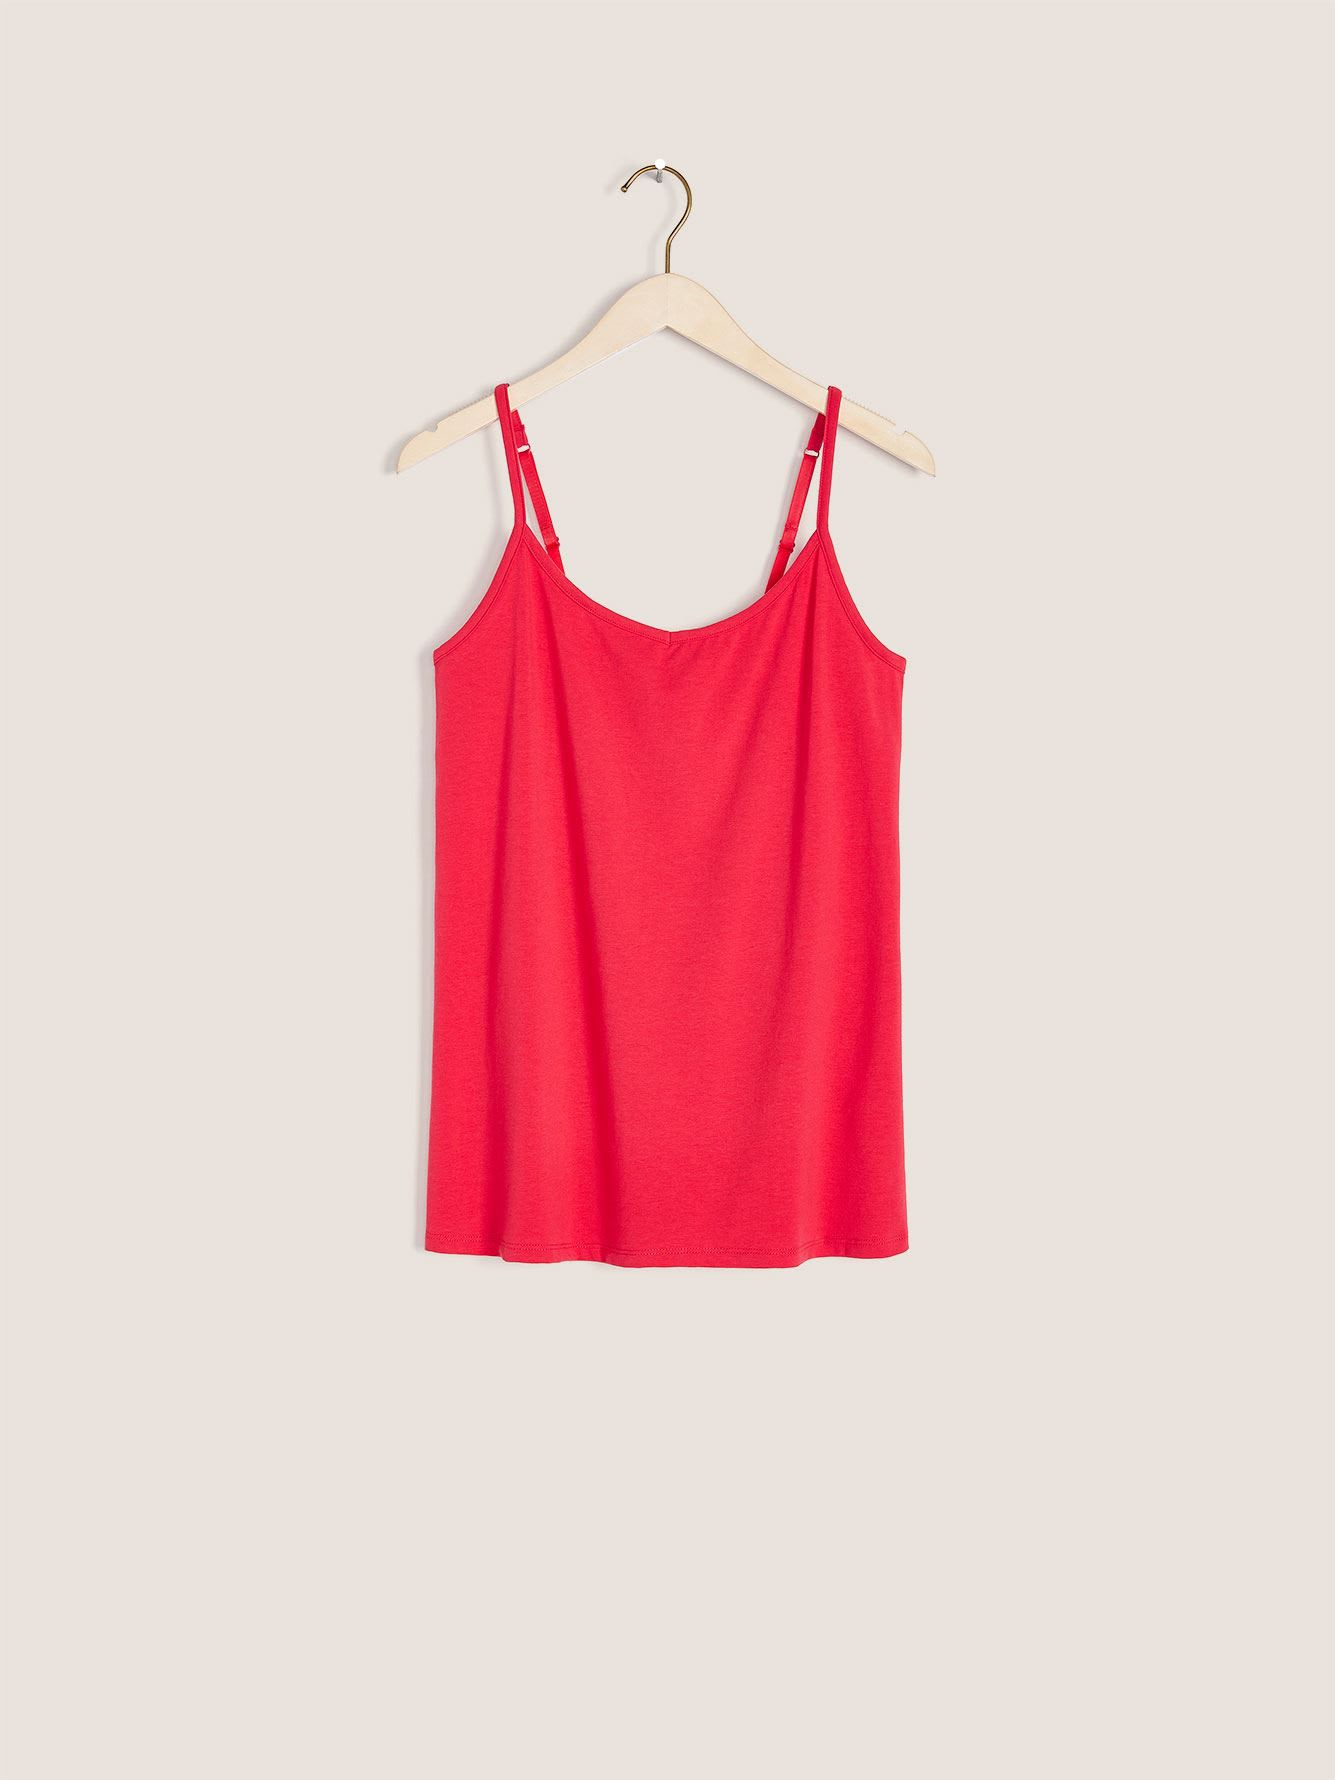 Fitted Cotton Tank Top - In Every Story